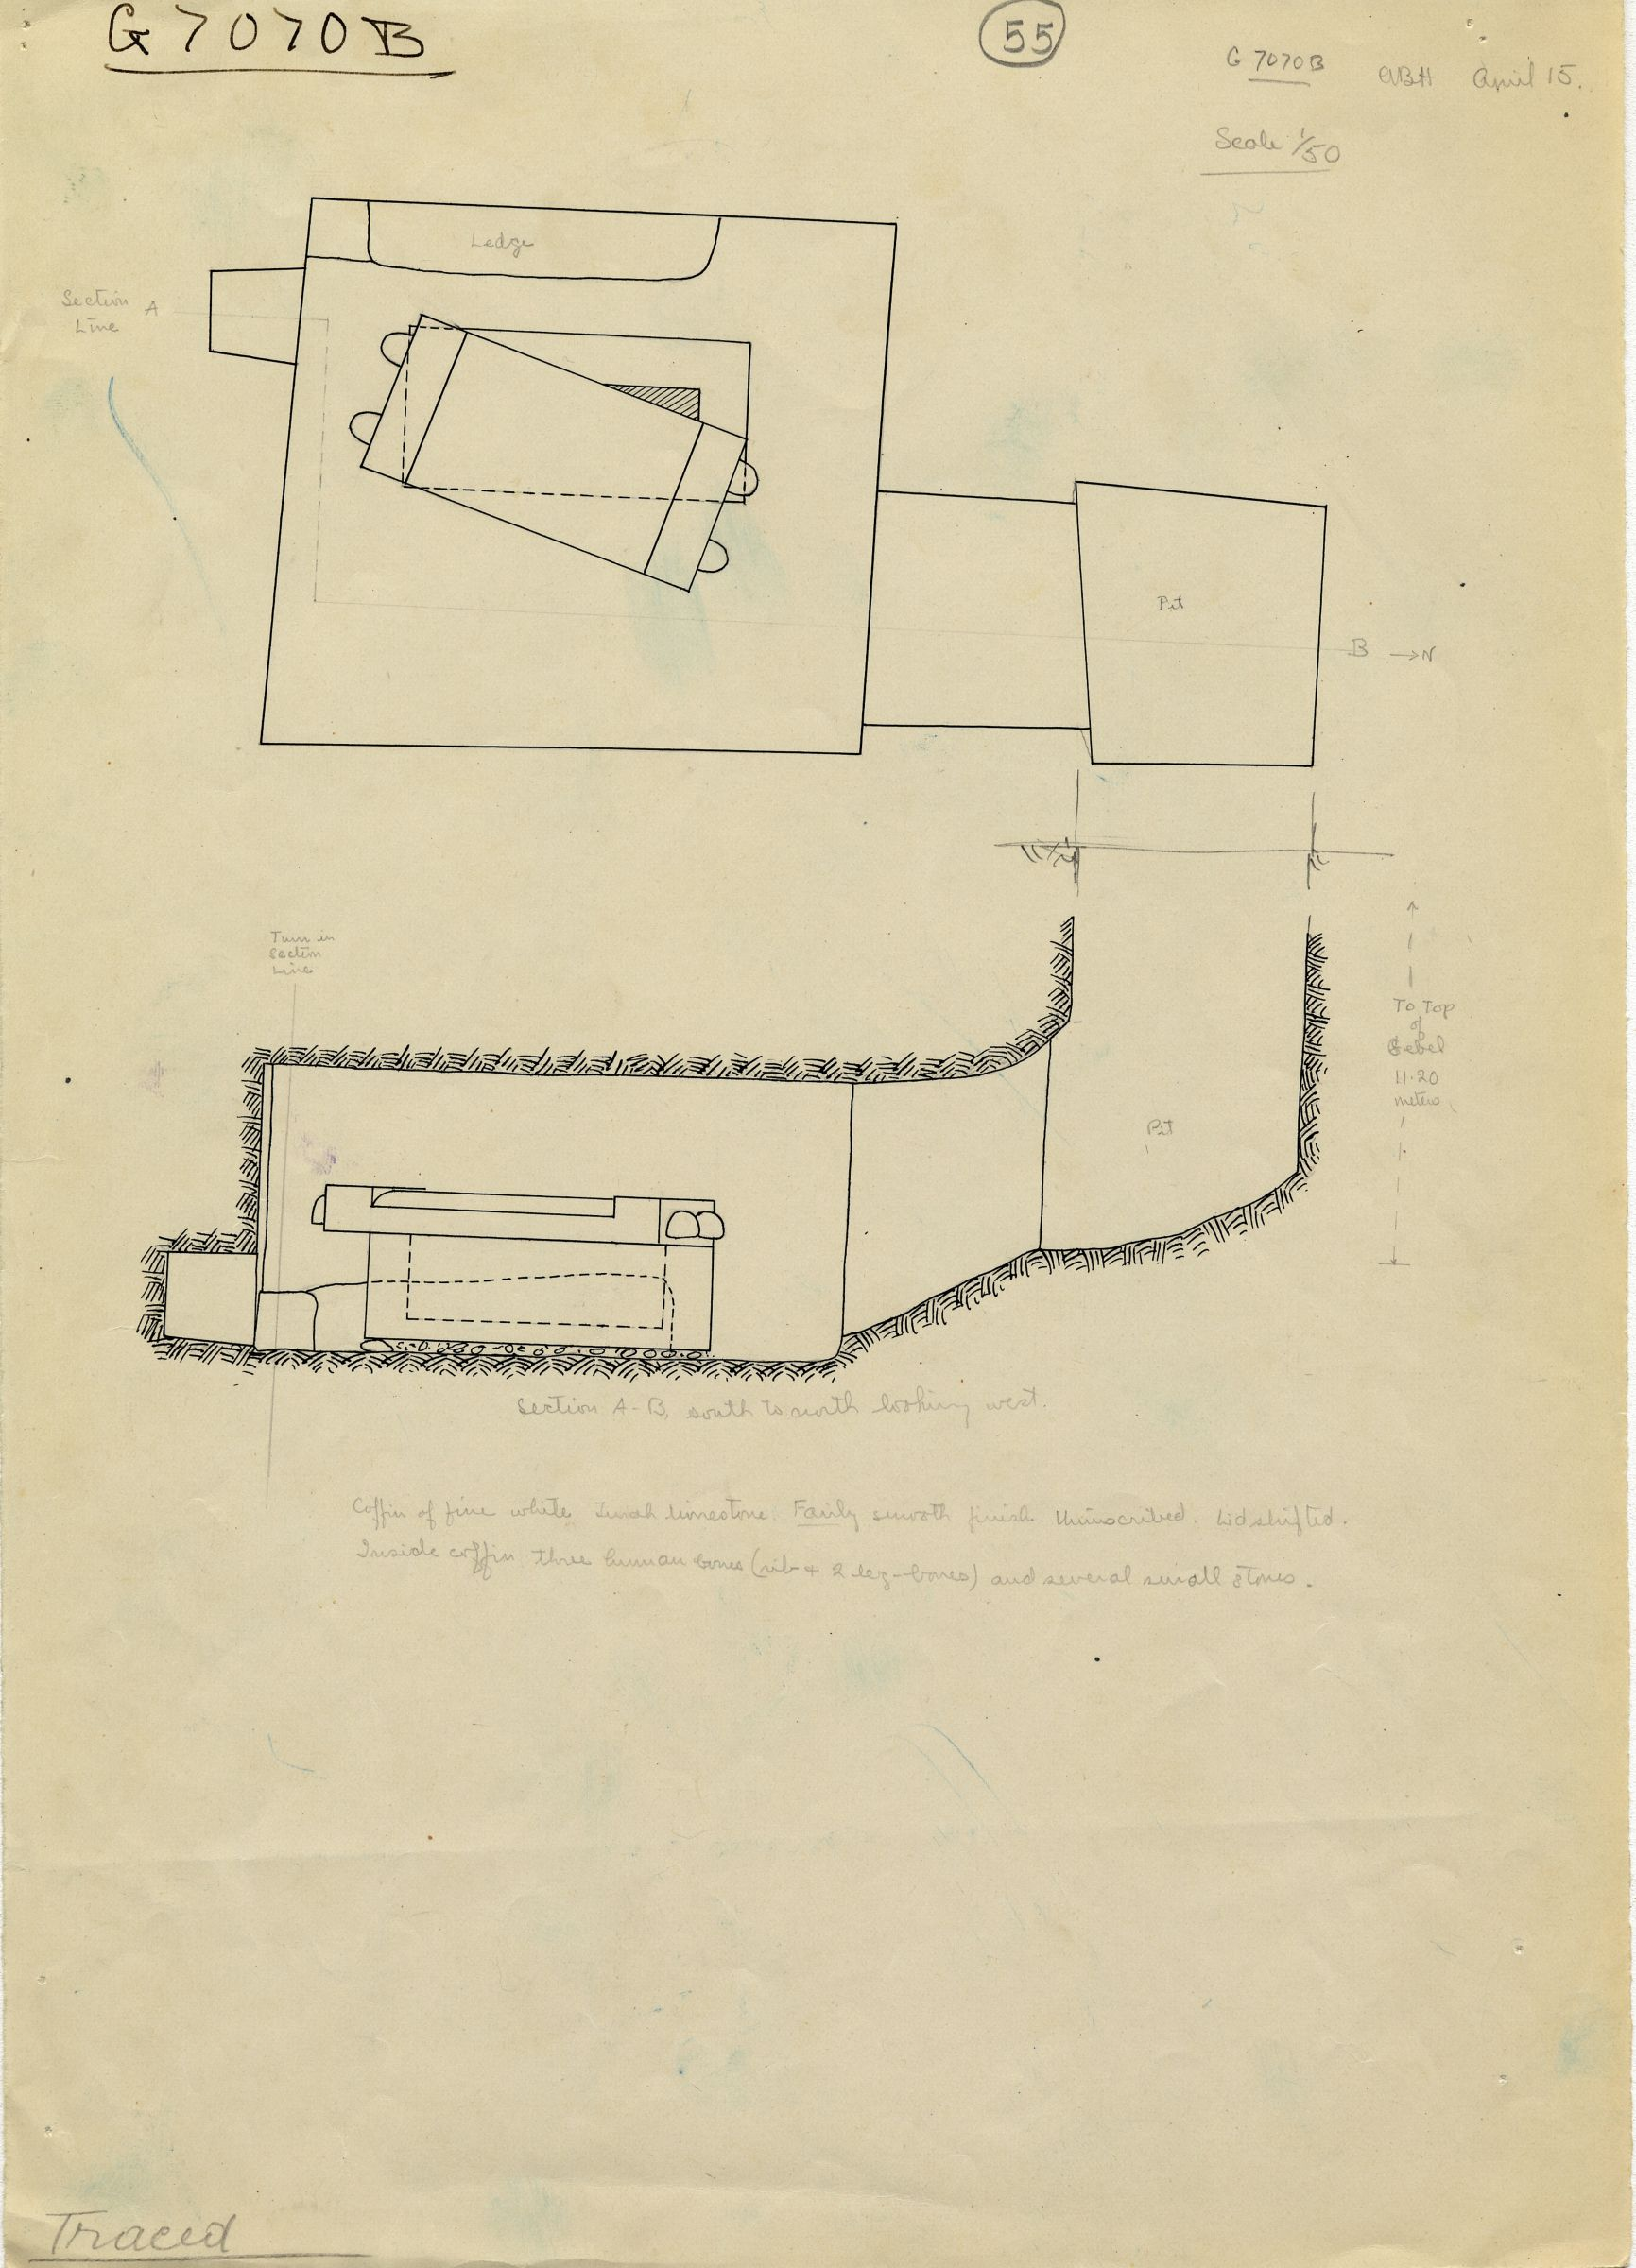 Maps and plans: G 7070, Shaft B